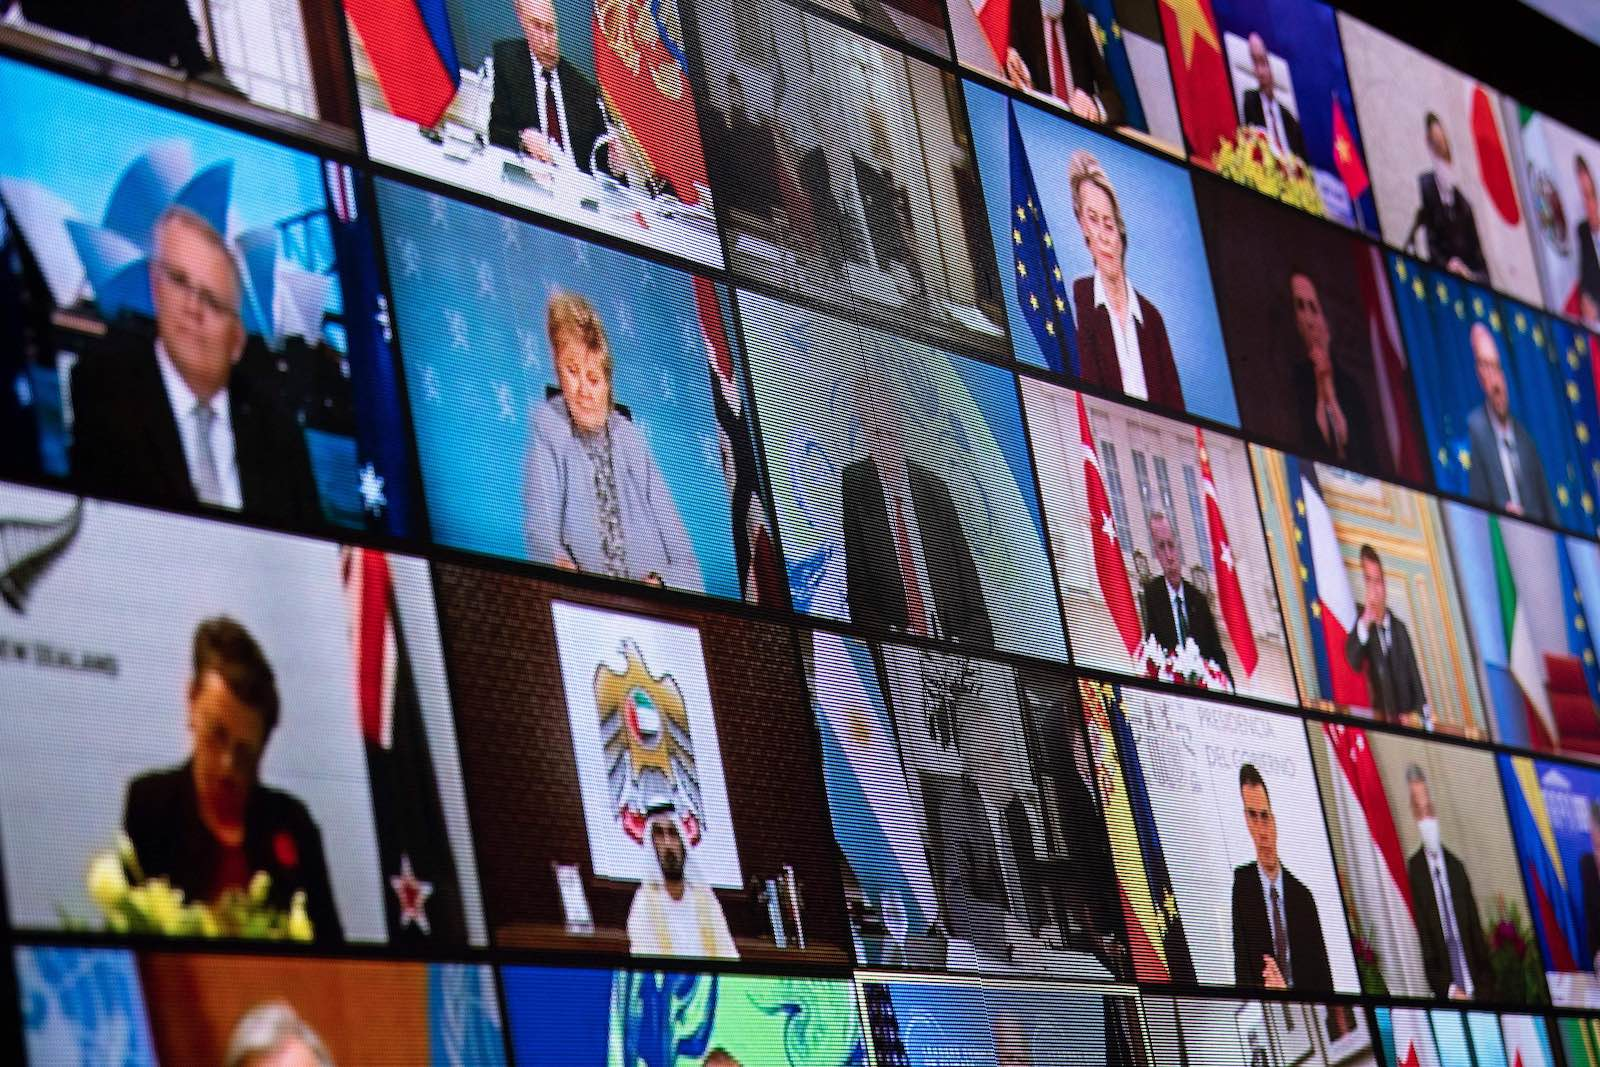 World leaders during a climate change virtual summit from the East Room of the White House (Brendan Smialowski/AFP via Getty Images)